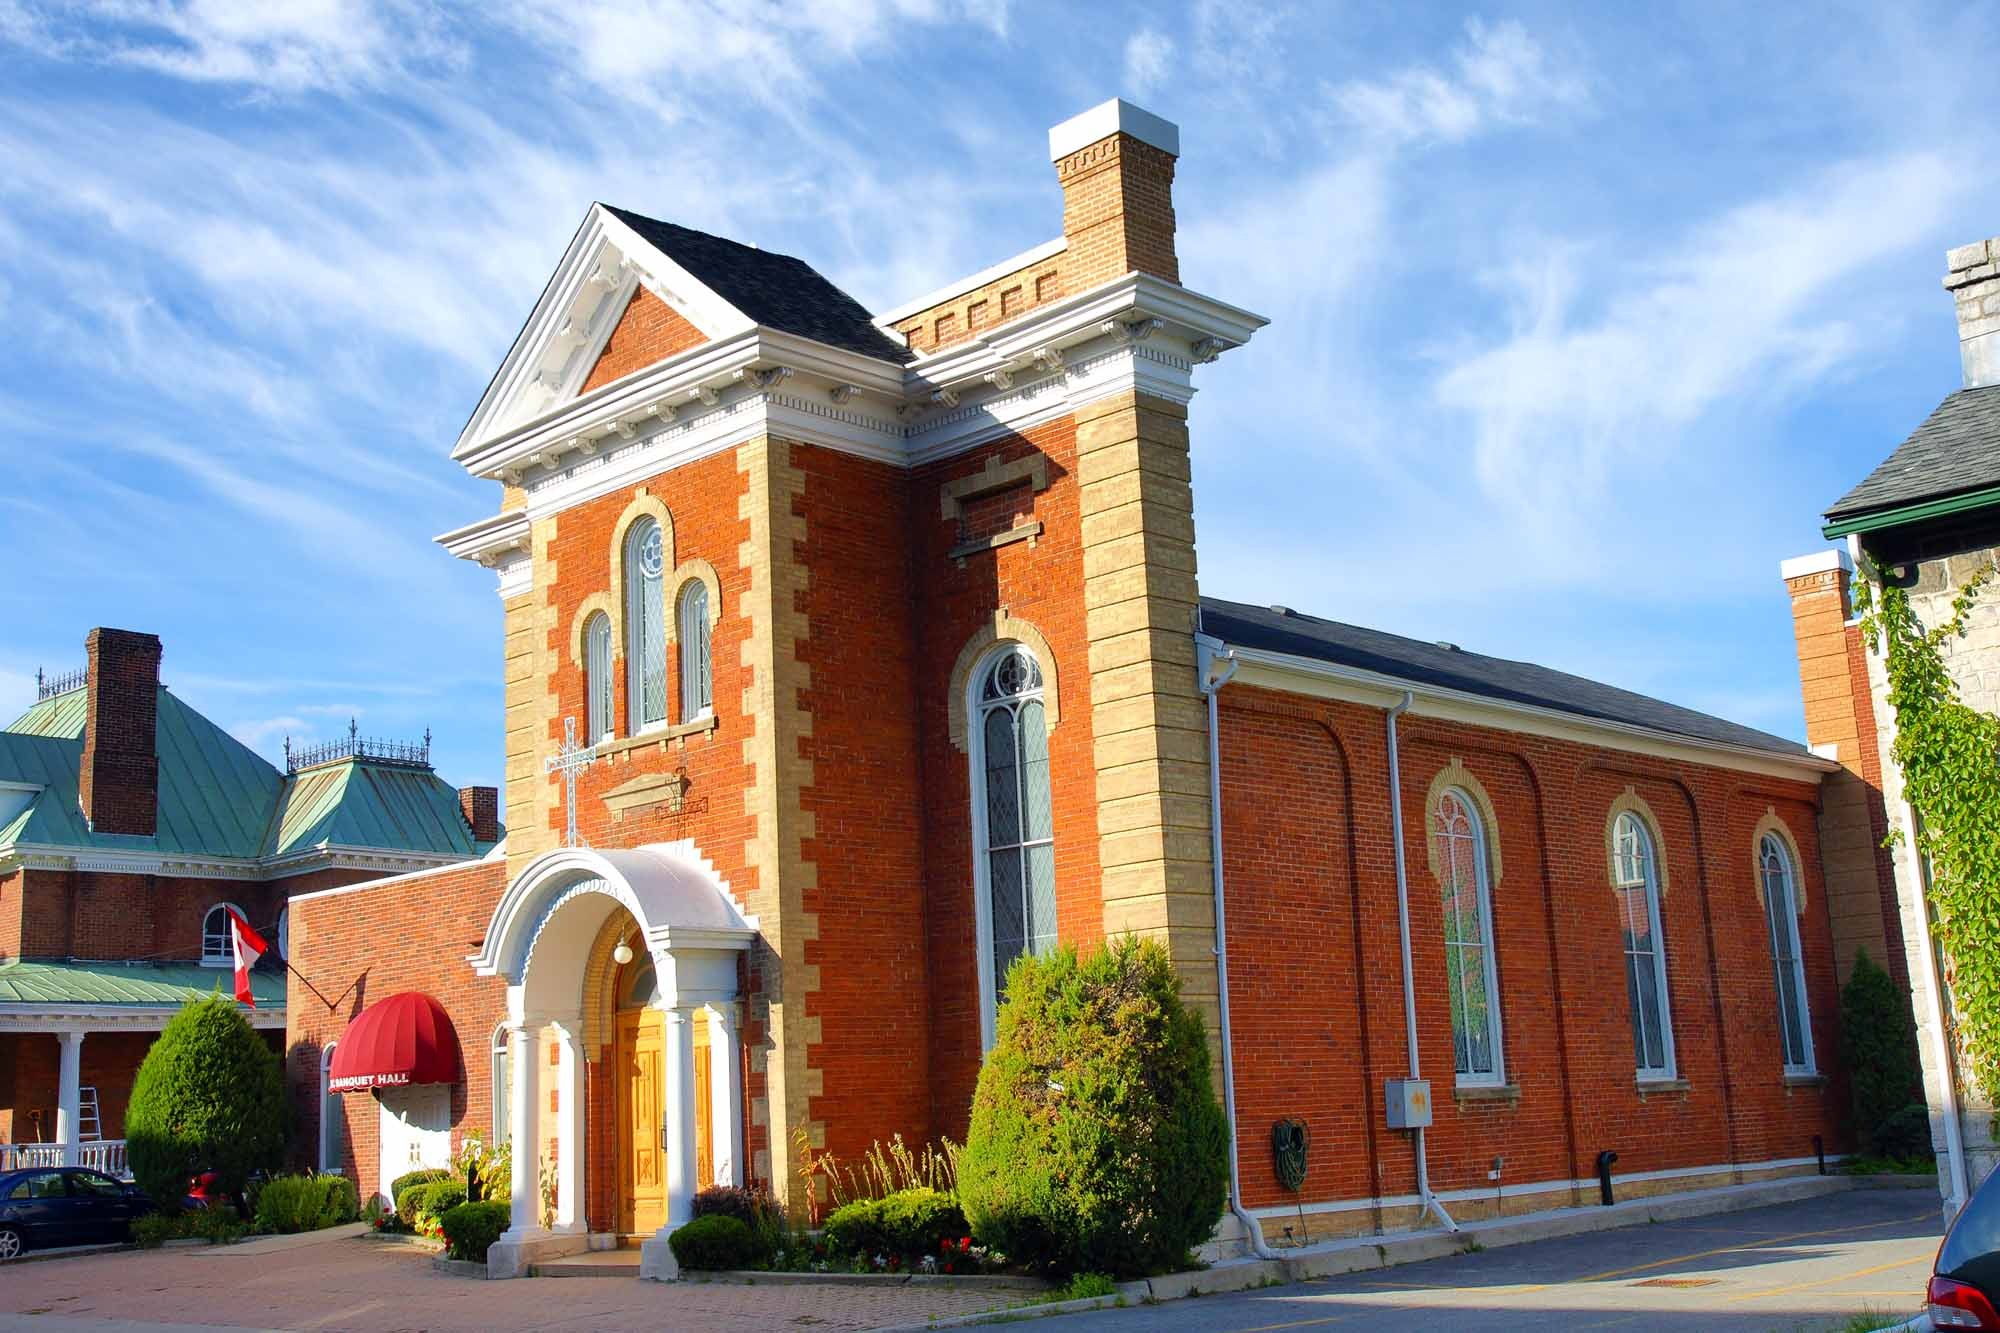 L'église orthodoxe greque Saint Athanassius à Kingston en Ontario au Canada